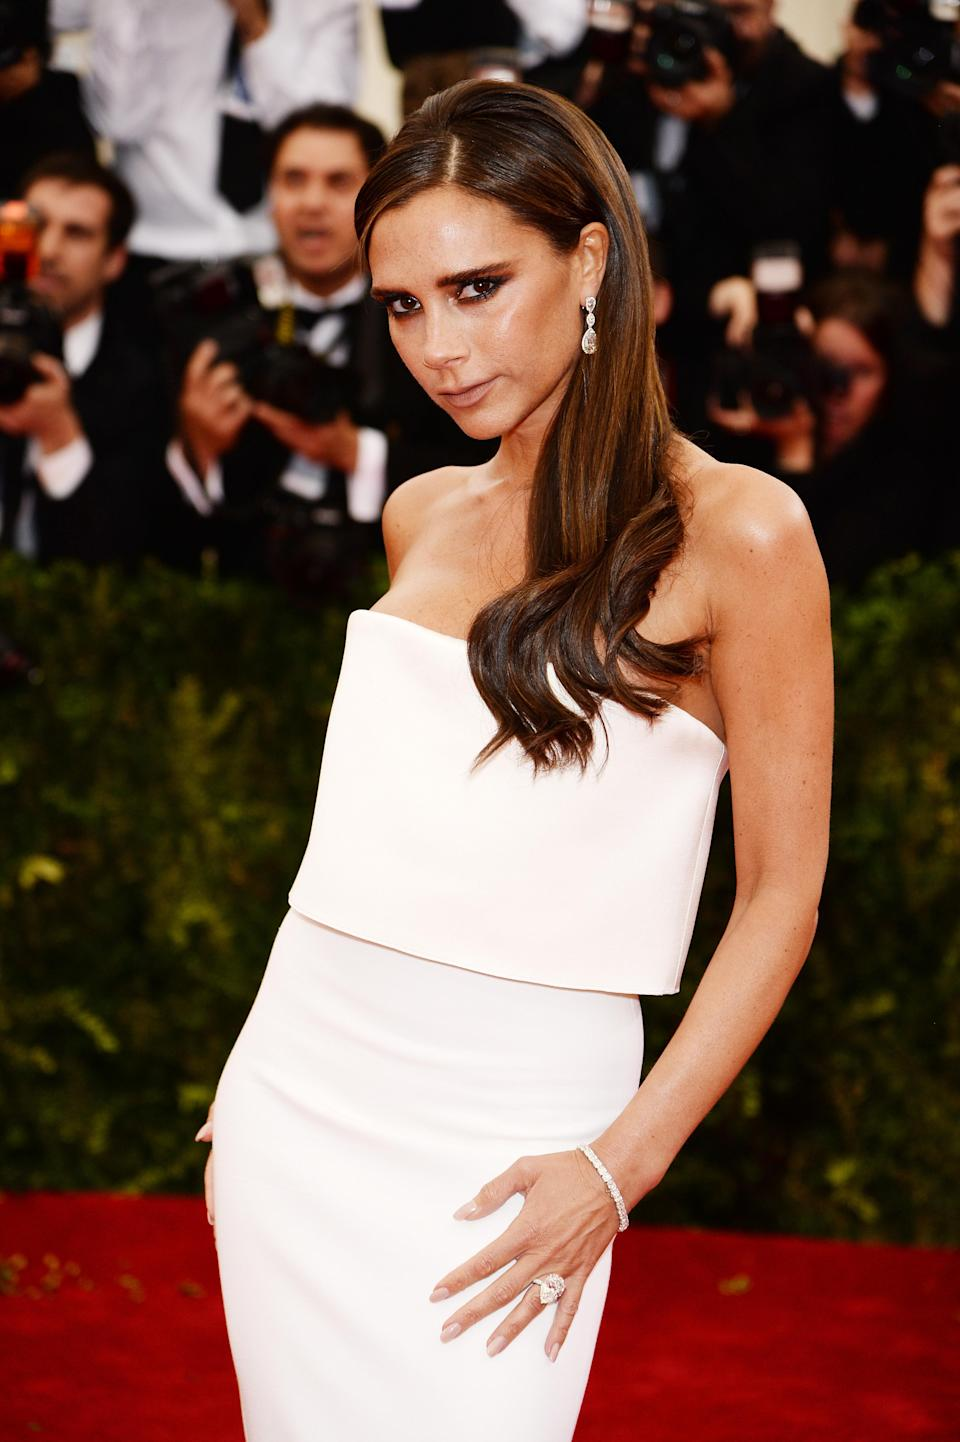 "<p>In 2017, Victoria Beckham penned a letter to her 18-year-old self for <a href=""https://www.vogue.co.uk/article/victoria-beckham-vogue-interview"" rel=""nofollow noopener"" target=""_blank"" data-ylk=""slk:British Vogue"" class=""link rapid-noclick-resp""><em>British Vogue</em></a> and revealed that she regretted having breast enlargement surgery. ""I should probably say, don't mess with your boobs,"" the fashion designer wrote. ""All those years I denied it – stupid. A sign of insecurity. Just celebrate what you've got."" <em>[Photo: Getty]</em> </p>"